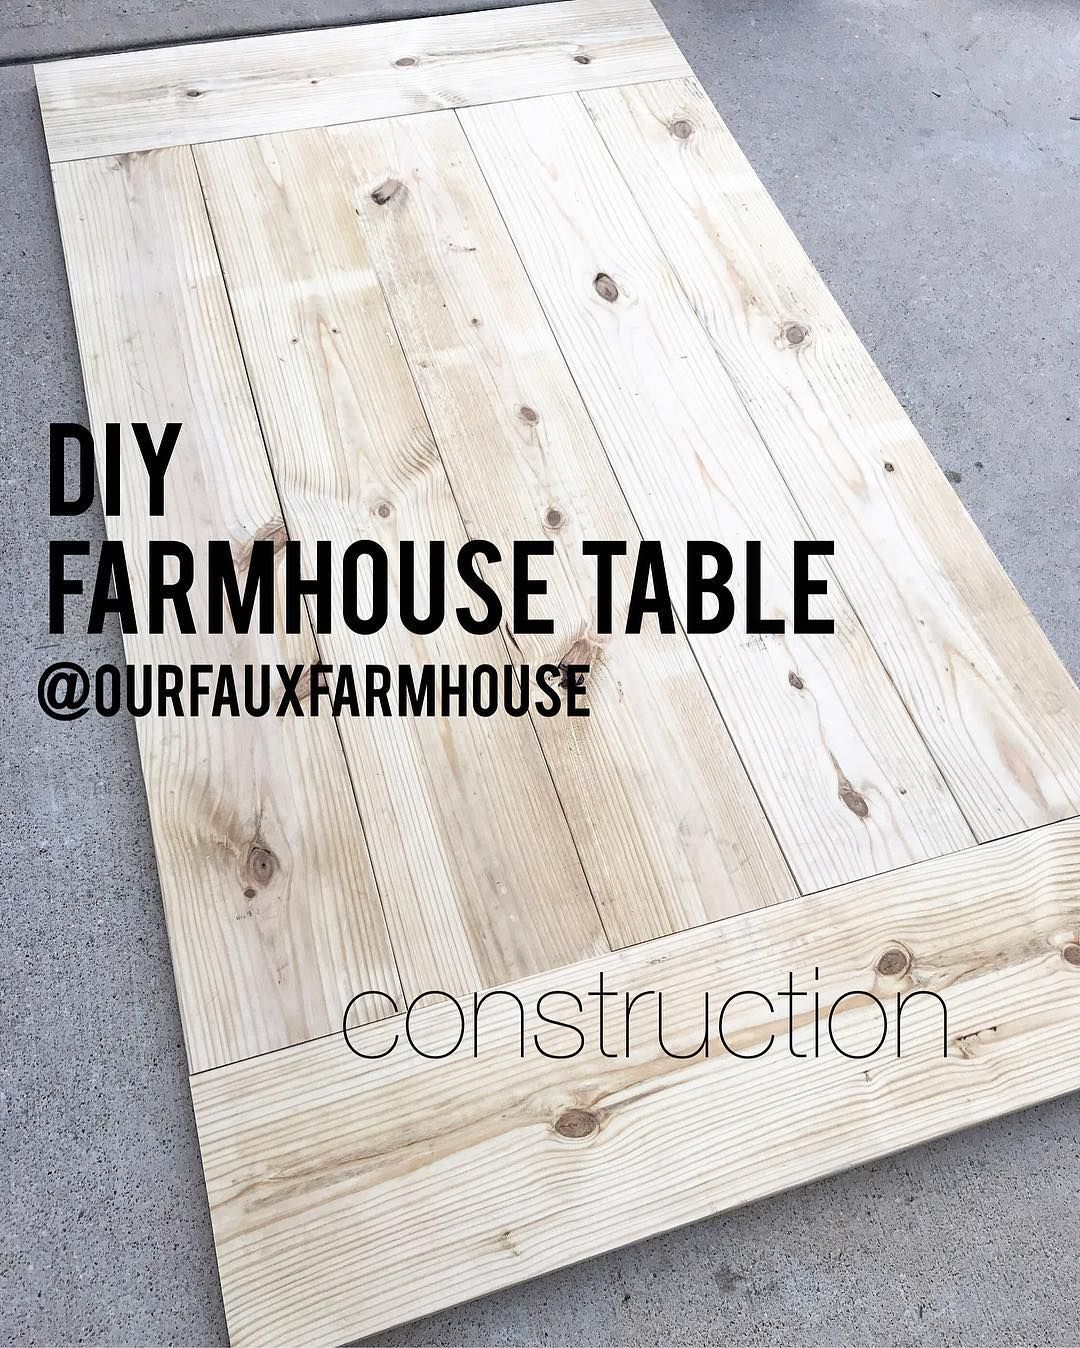 Diy 7 Farmhouse Table Part Ii Construction Please Note On The